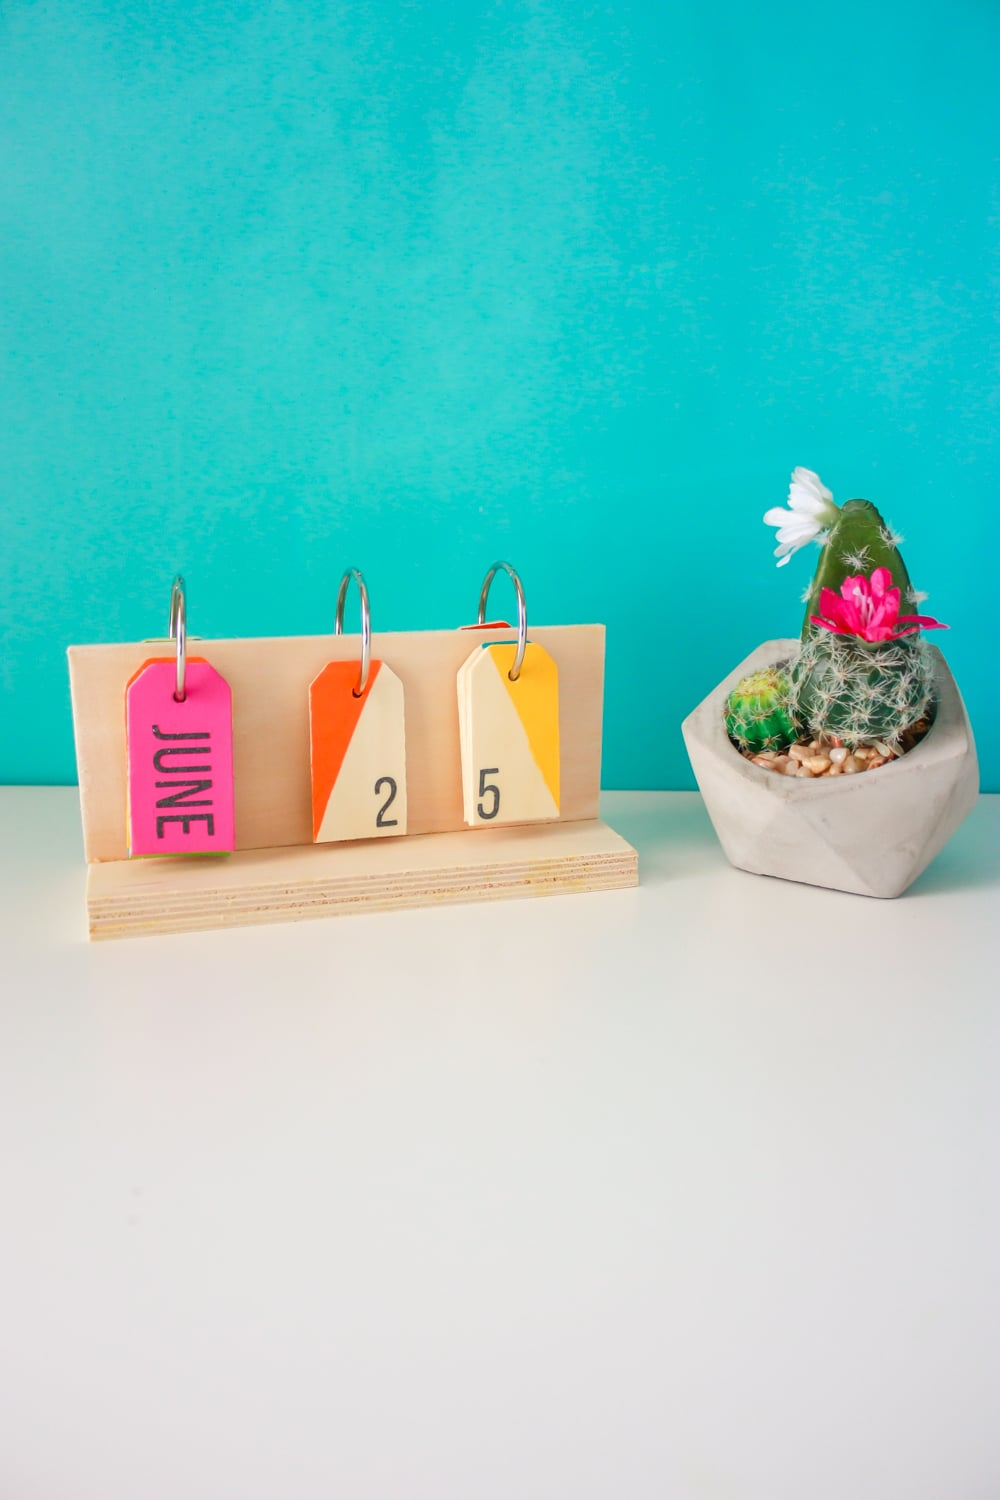 How to make a perpetual calendar for a colorful way to display the date! You'll need wood pieces, wooden tags, glue, metal rings, paint, and a drill.